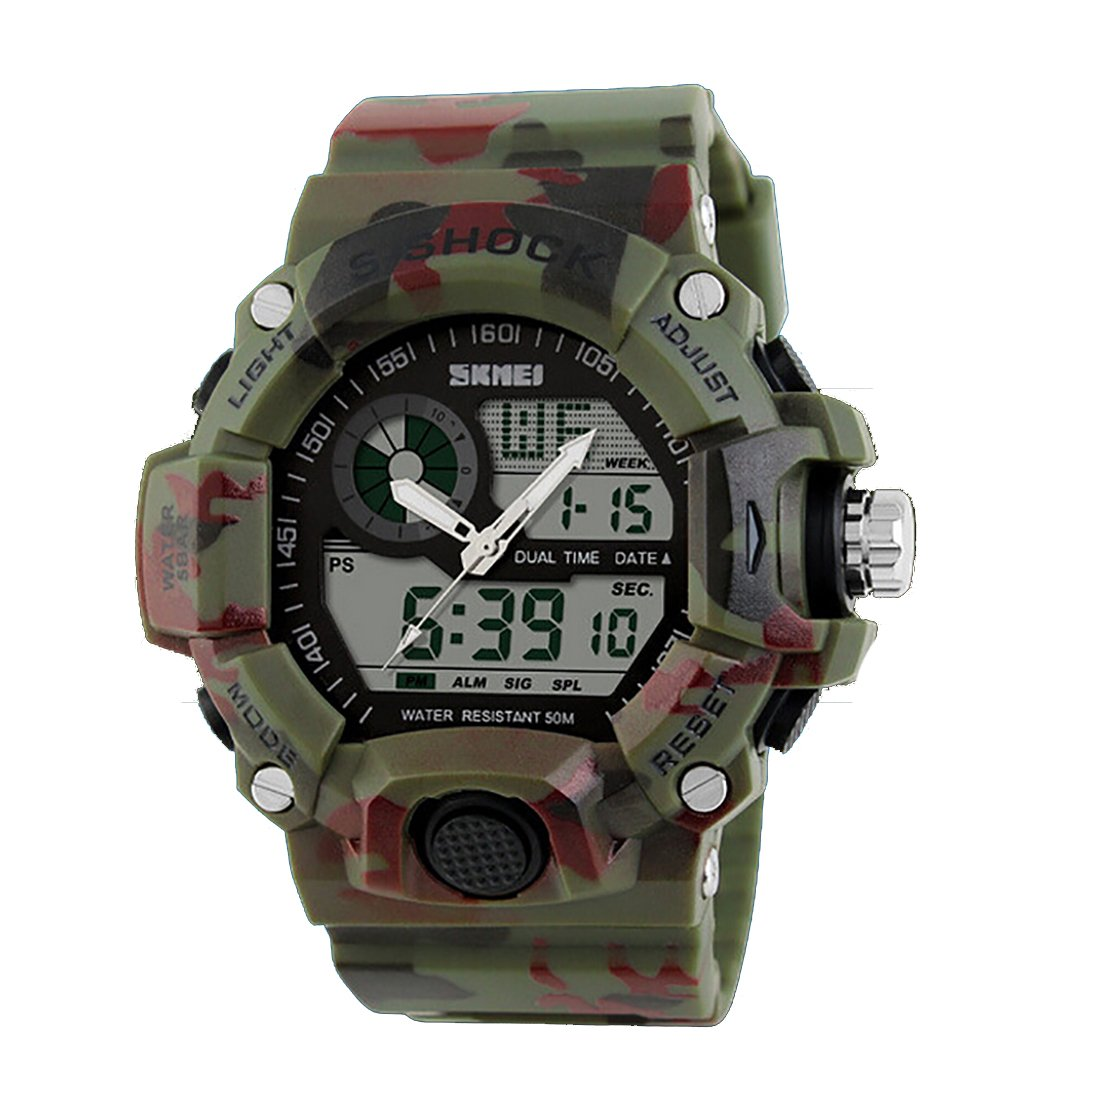 Amazon.com: Quartz Digital Camo Waterproof Watch Men Dual Time Man Sports Watches Men Luxury Reloj Hombre Bright Green: Watches